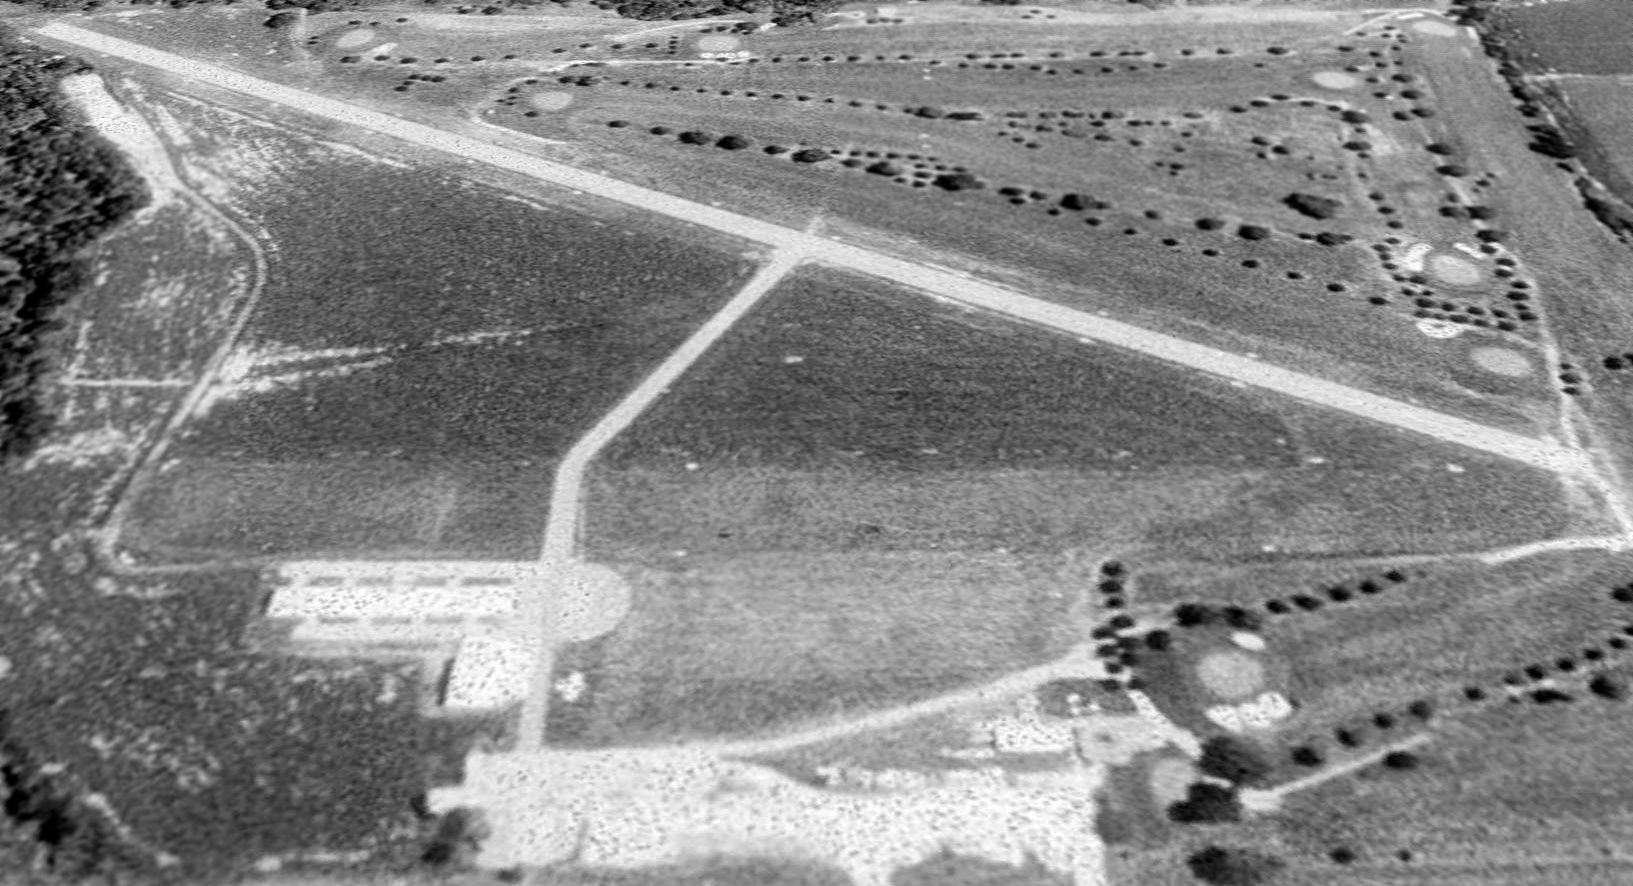 Abandoned Little Known Airfields Northeastern Nebraska 1960 Lincoln Wiring Diagram A 1988 Usgs Aerial View Looking East Depicted Blair Airport As Remaining Intact Bit Was Not Evident If The Still Open At That Point